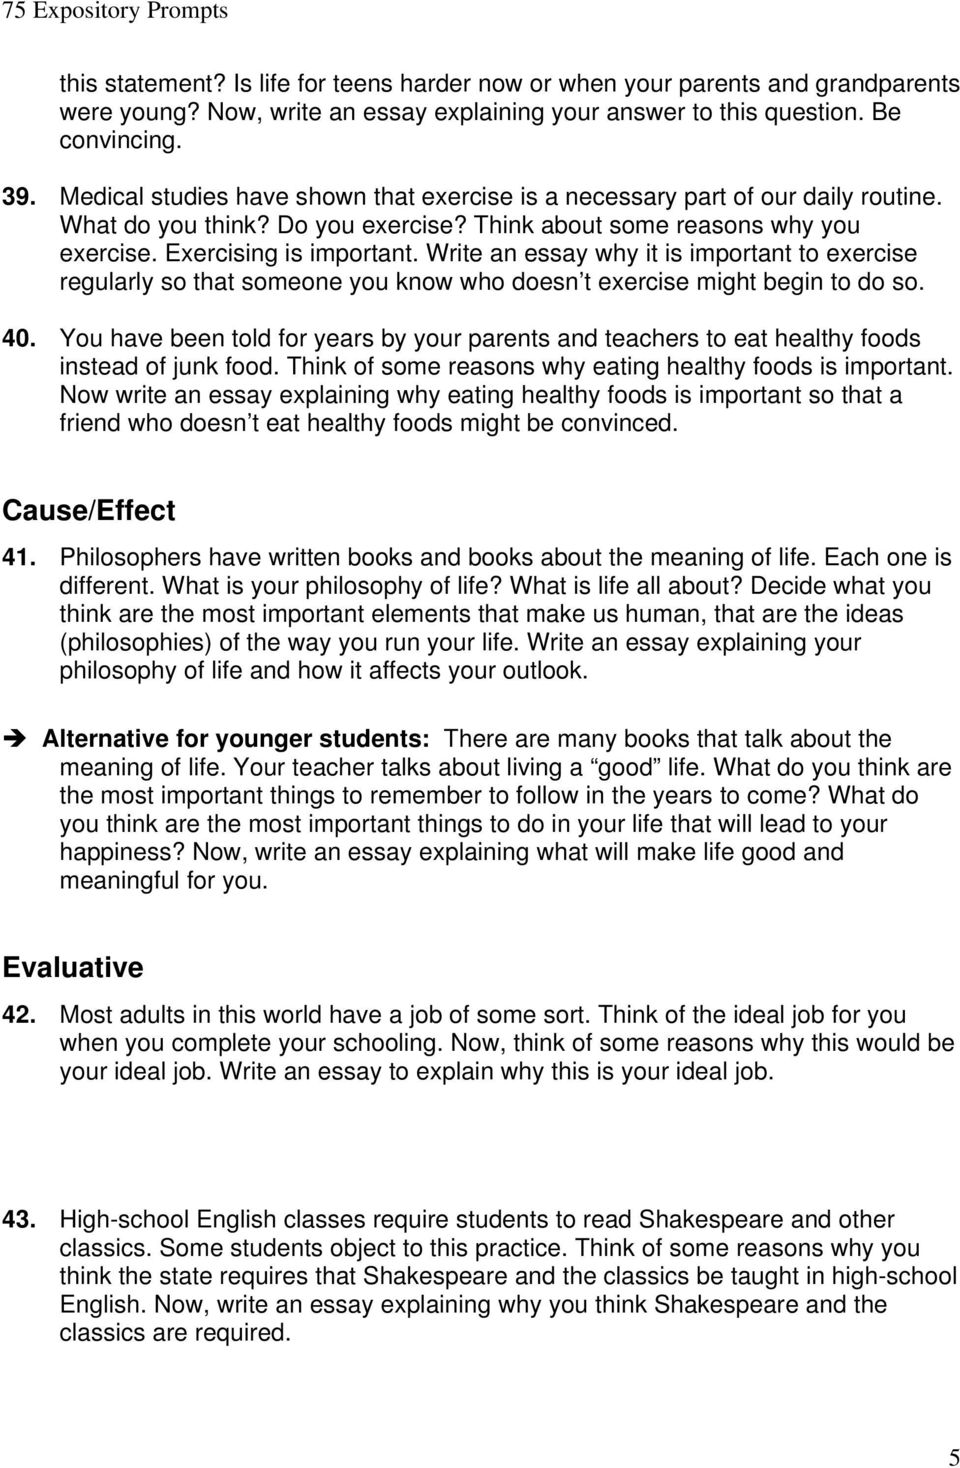 009 Write My Top Argumentative Essay On Shakespeare Importance Of Healthy Living Astounding Full